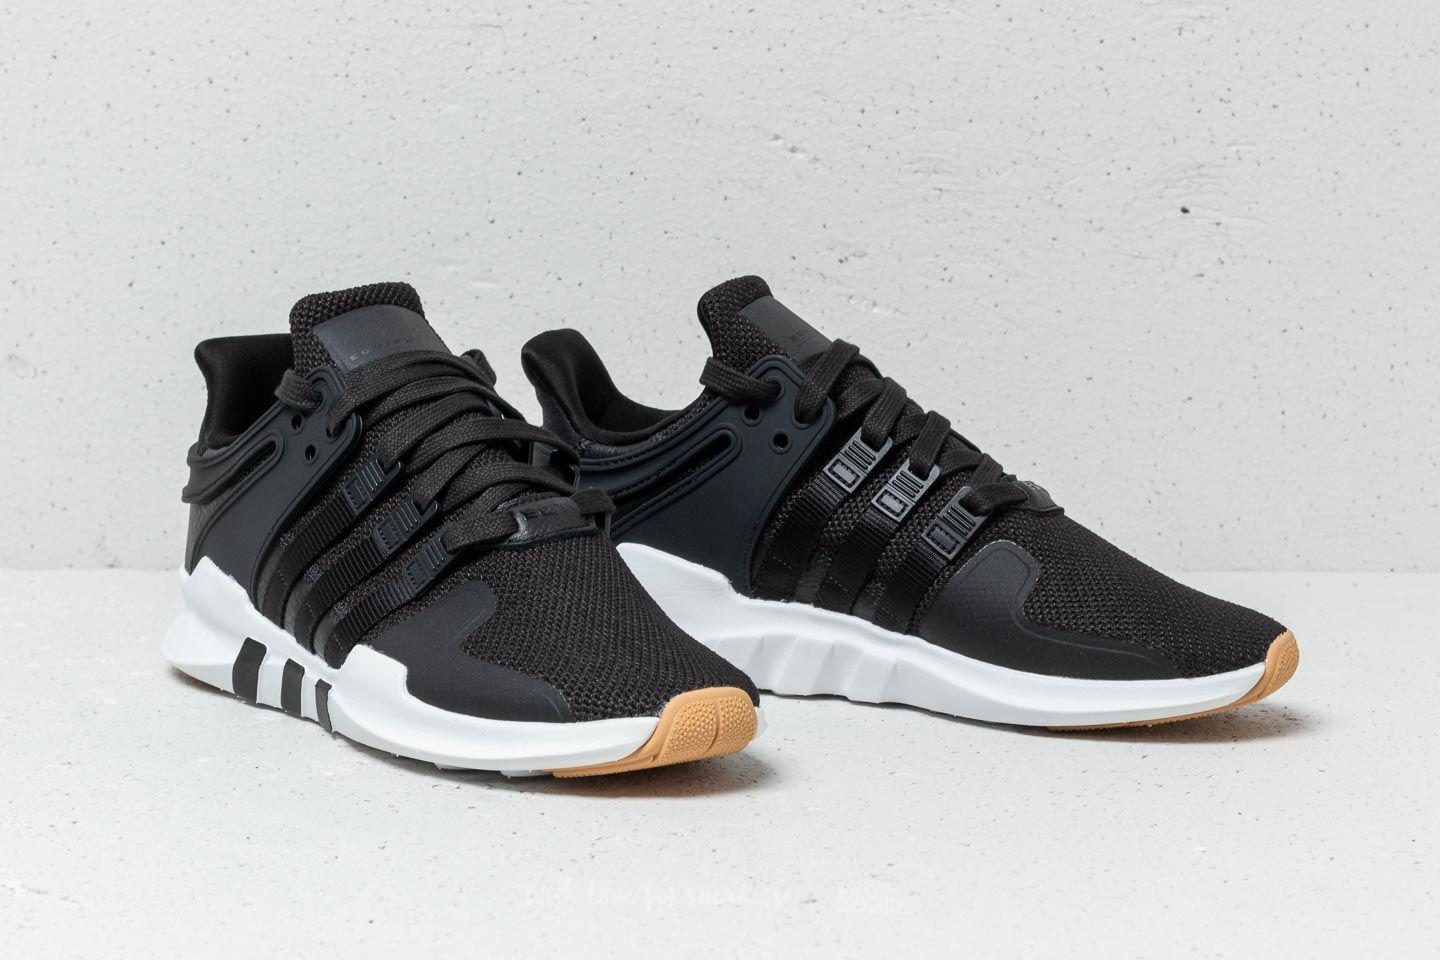 best service 1f7ab 65091 Adidas Originals - Adidas Eqt Support Adv Core Black Ftw White Gum for  Men. View fullscreen